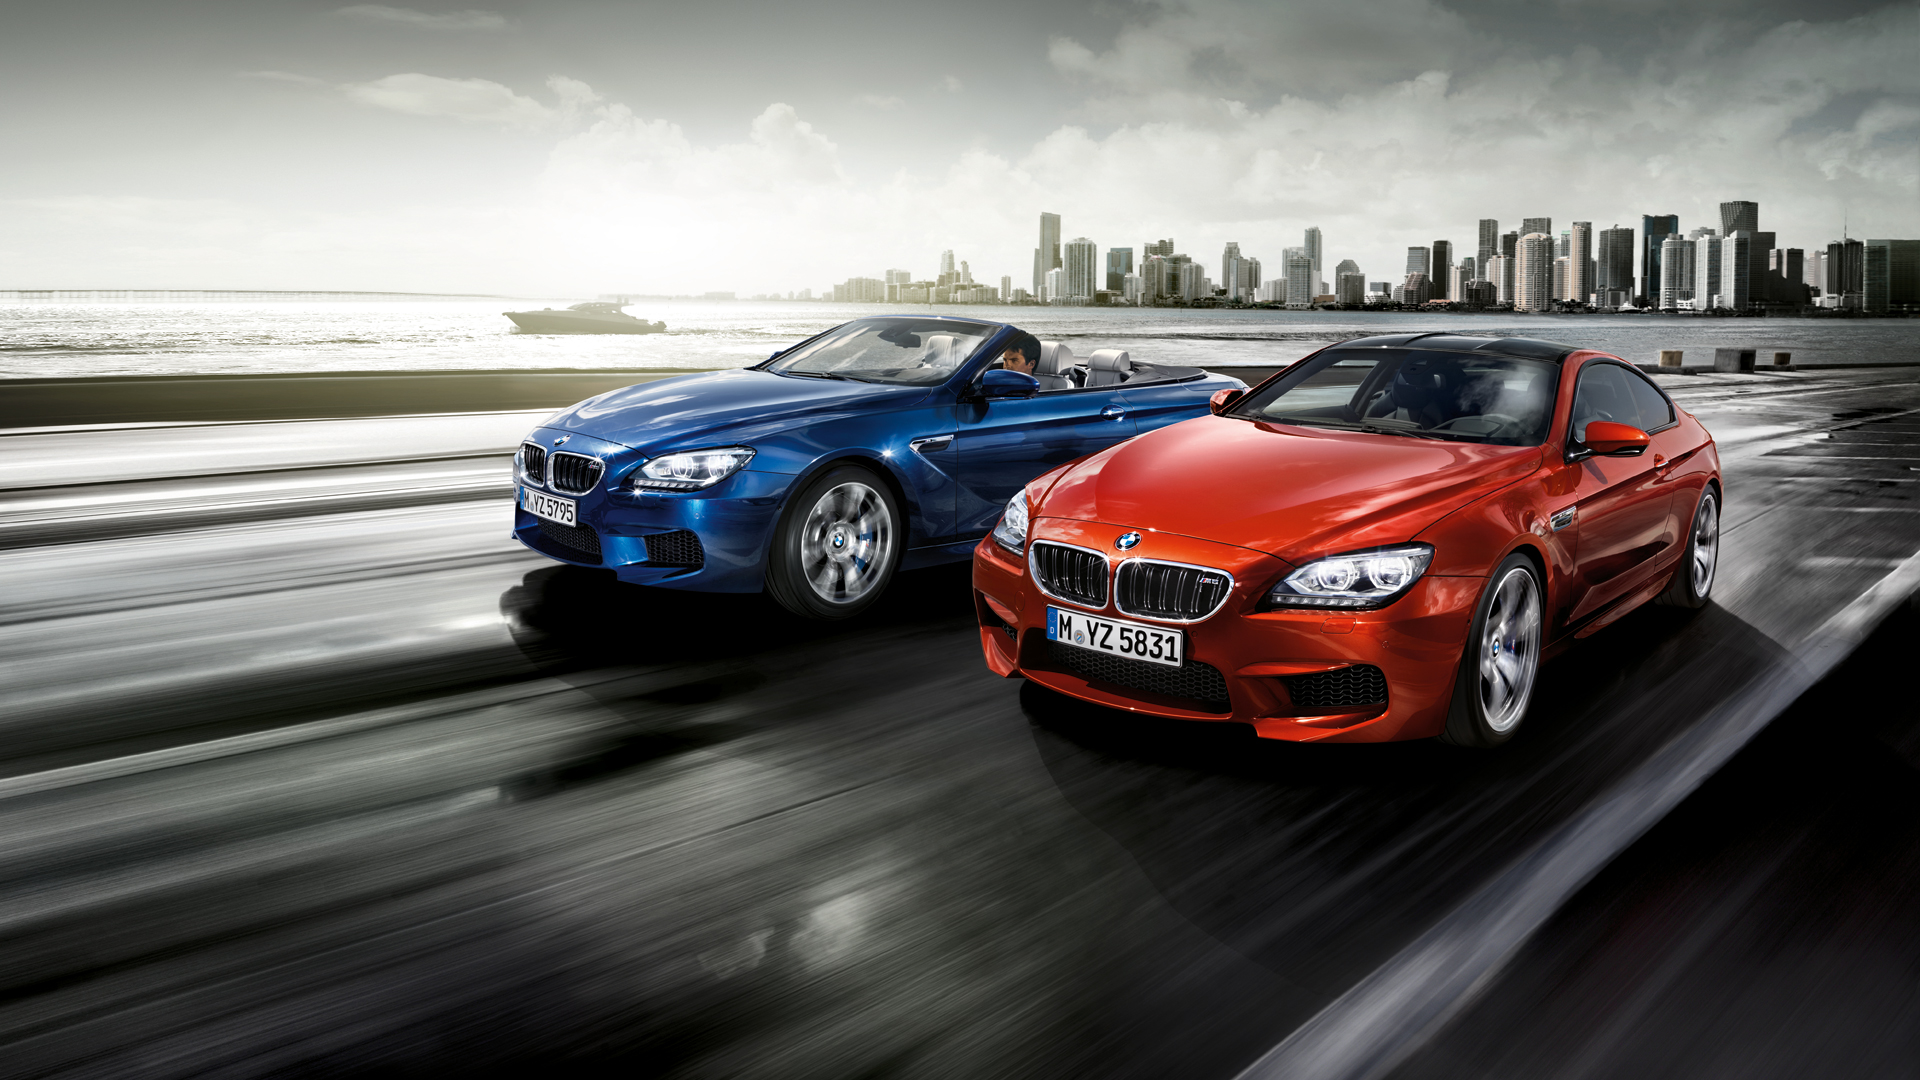 BMW M6 convertible image gallery 6 19201